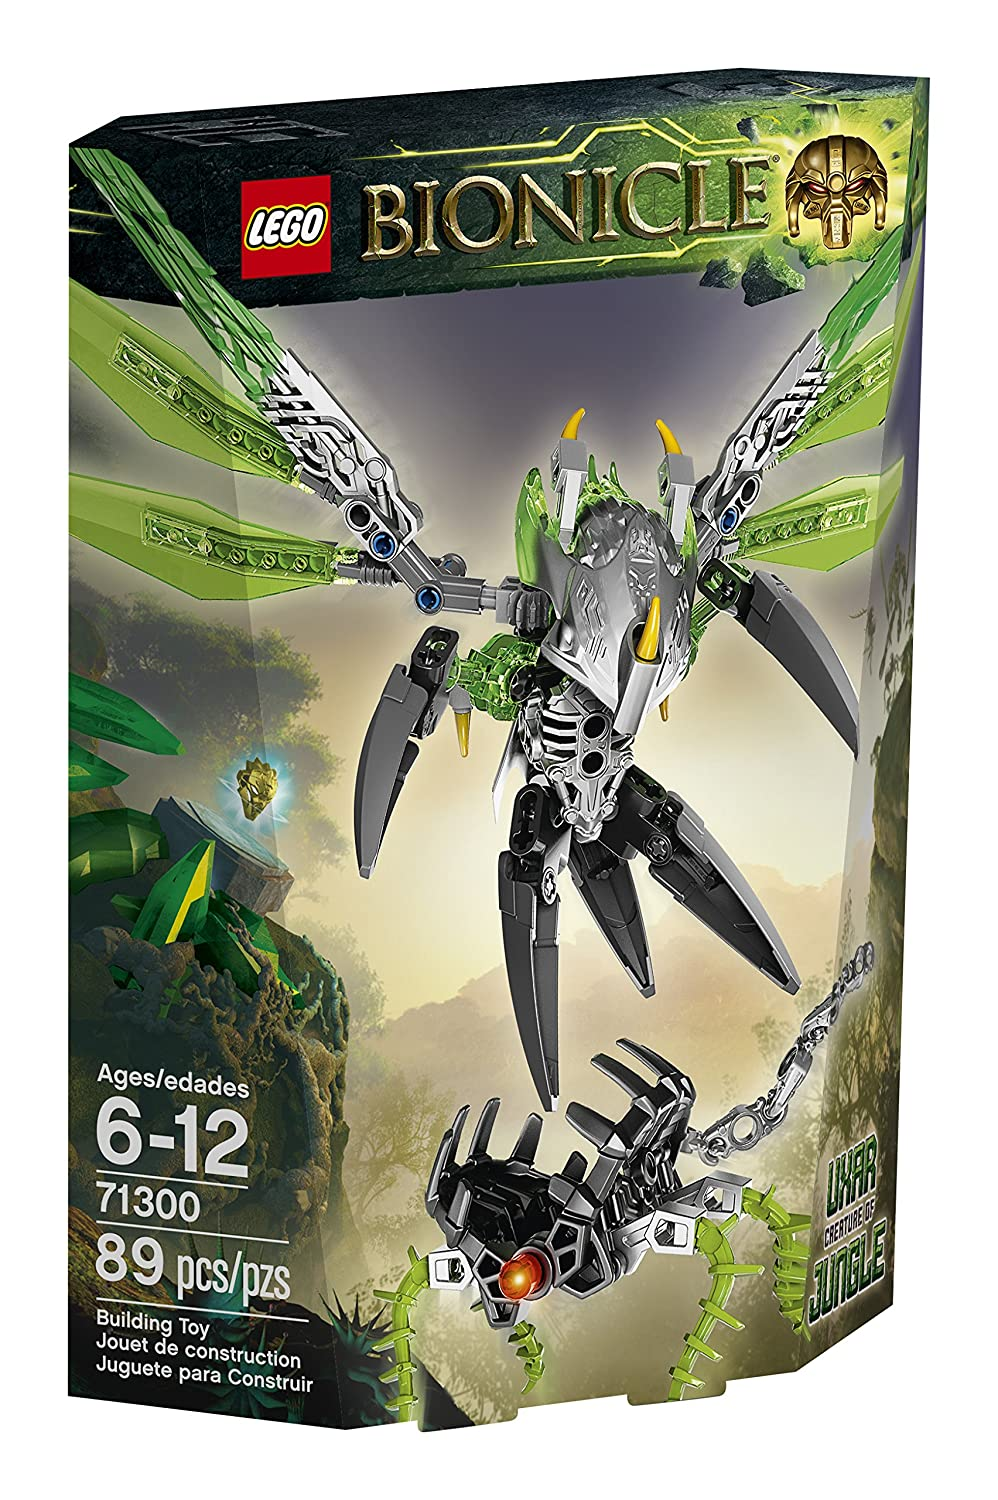 15 Best Lego BIONICLE Sets Reviews of 2021 15